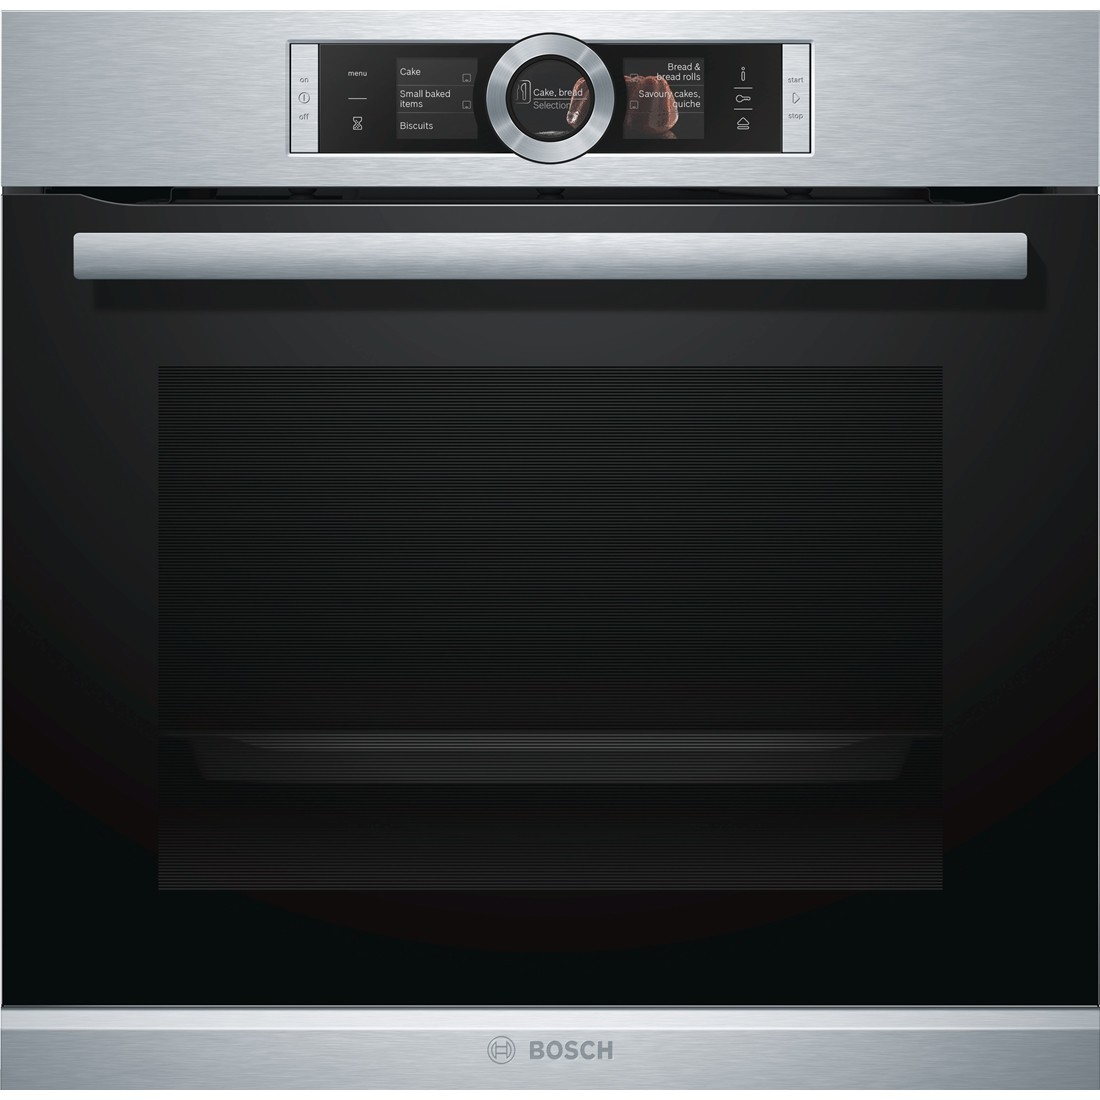 Bosch Small Kitchen Appliances Bosch Hrg6769s1 Forno Dueg Store